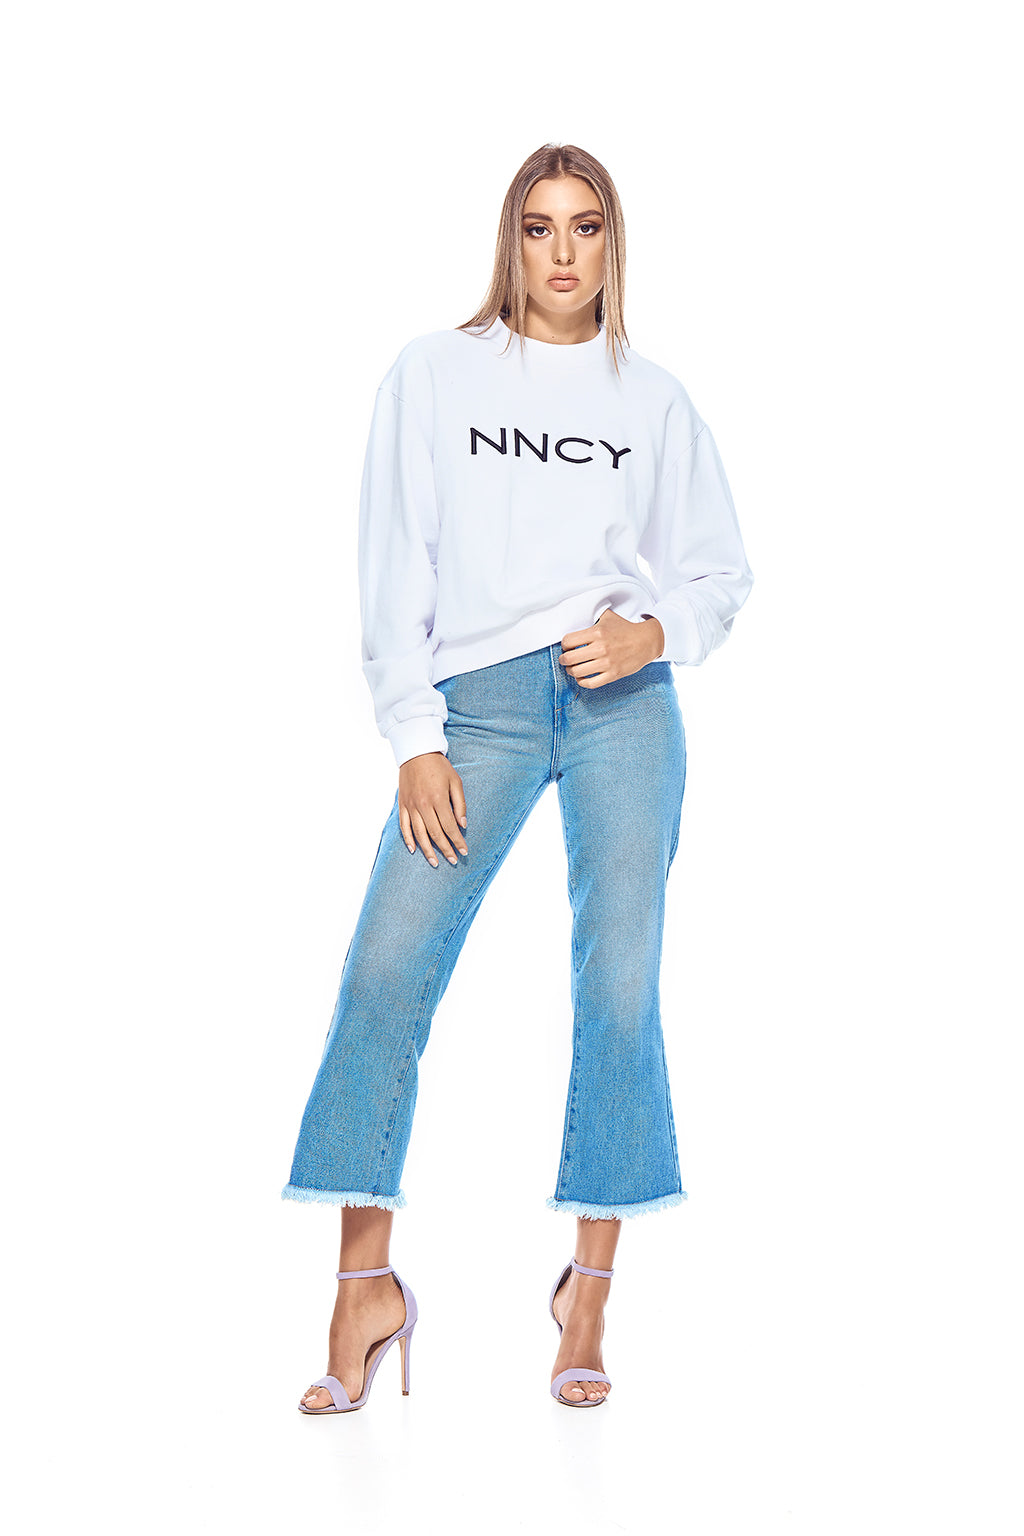 NNCY Oversized Logo Sweater - White